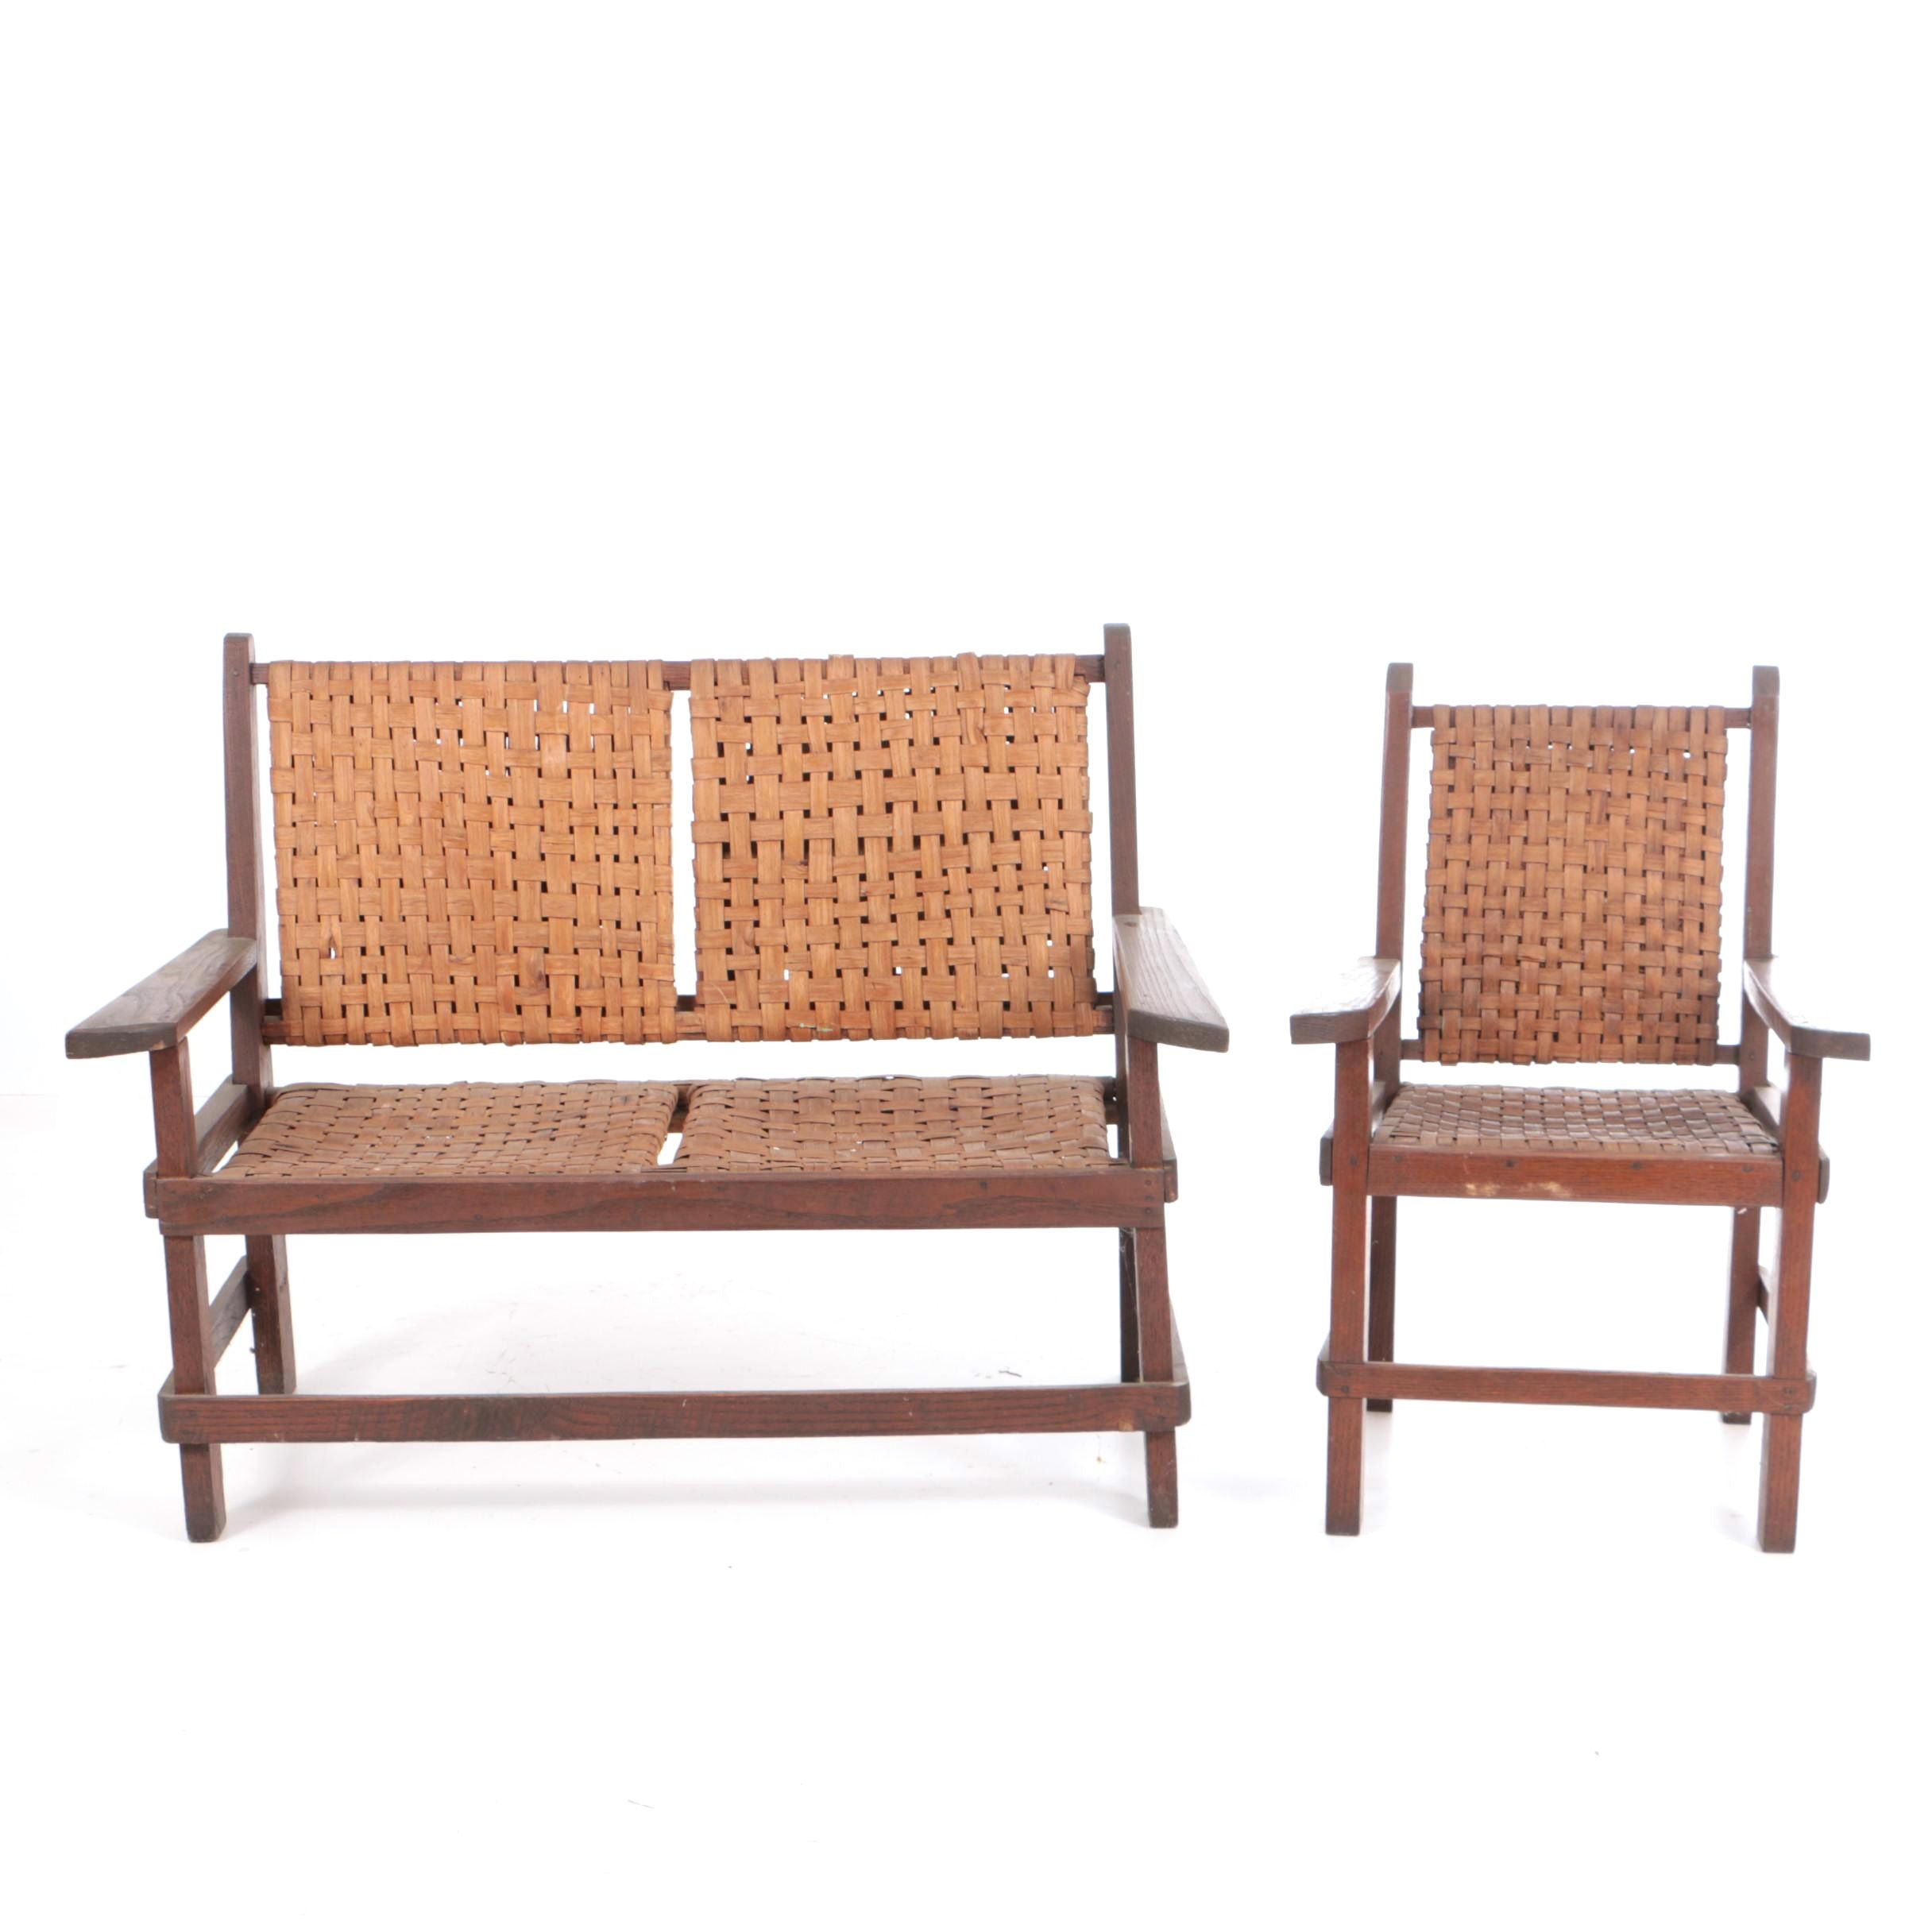 Vintage Oak Settee and Armchair with Splint-Woven Backs and Seats